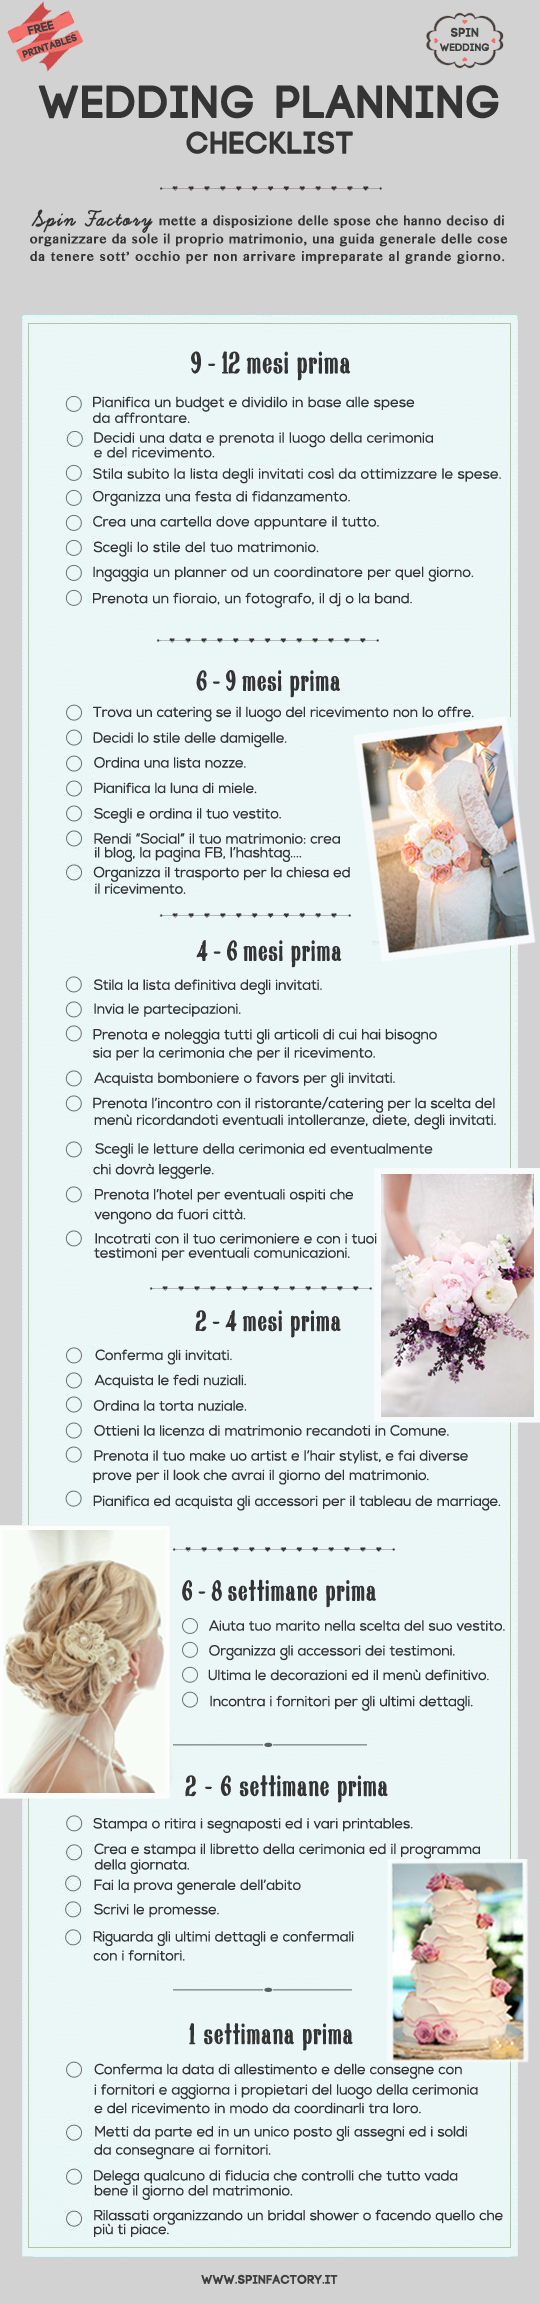 Allestimento Casa Della Sposa ultimate wedding planning checklist in italiano. per la